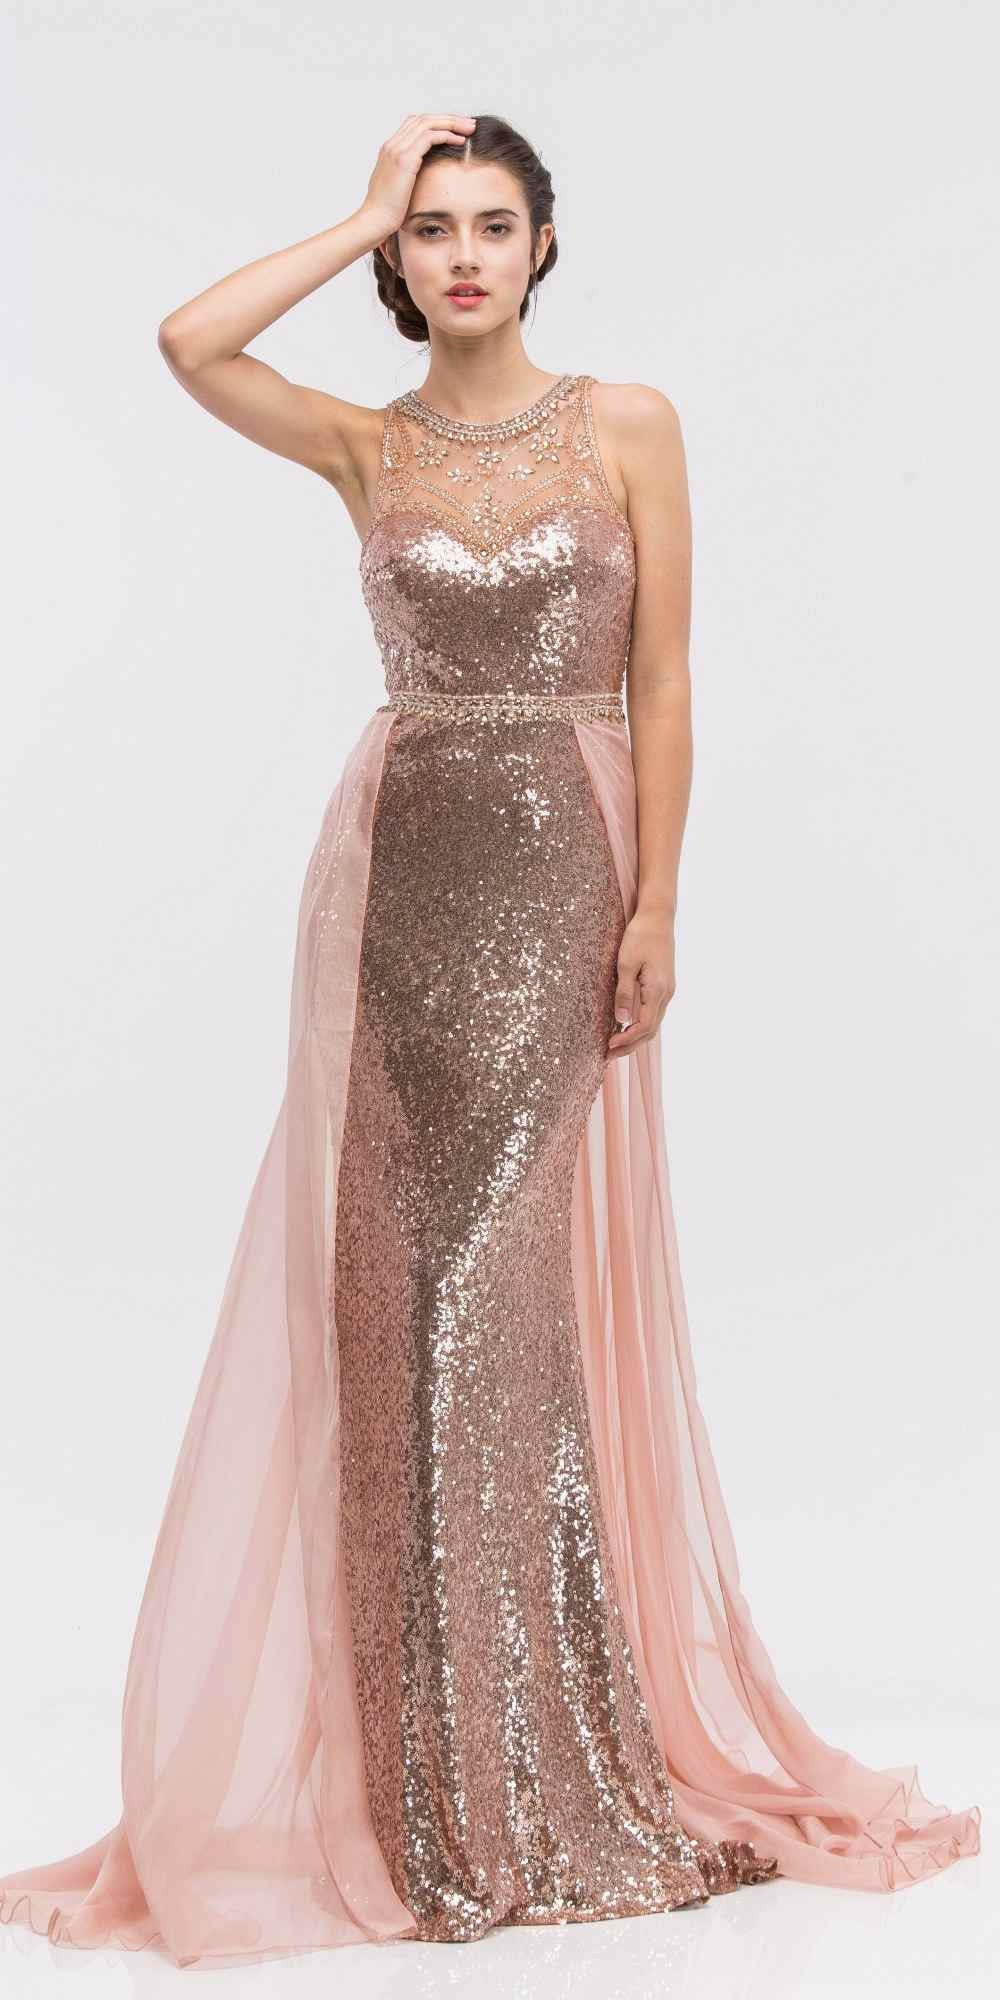 Illusion Sequins Prom Gown Sleeveless with Sheer Train Rose/Gold ...